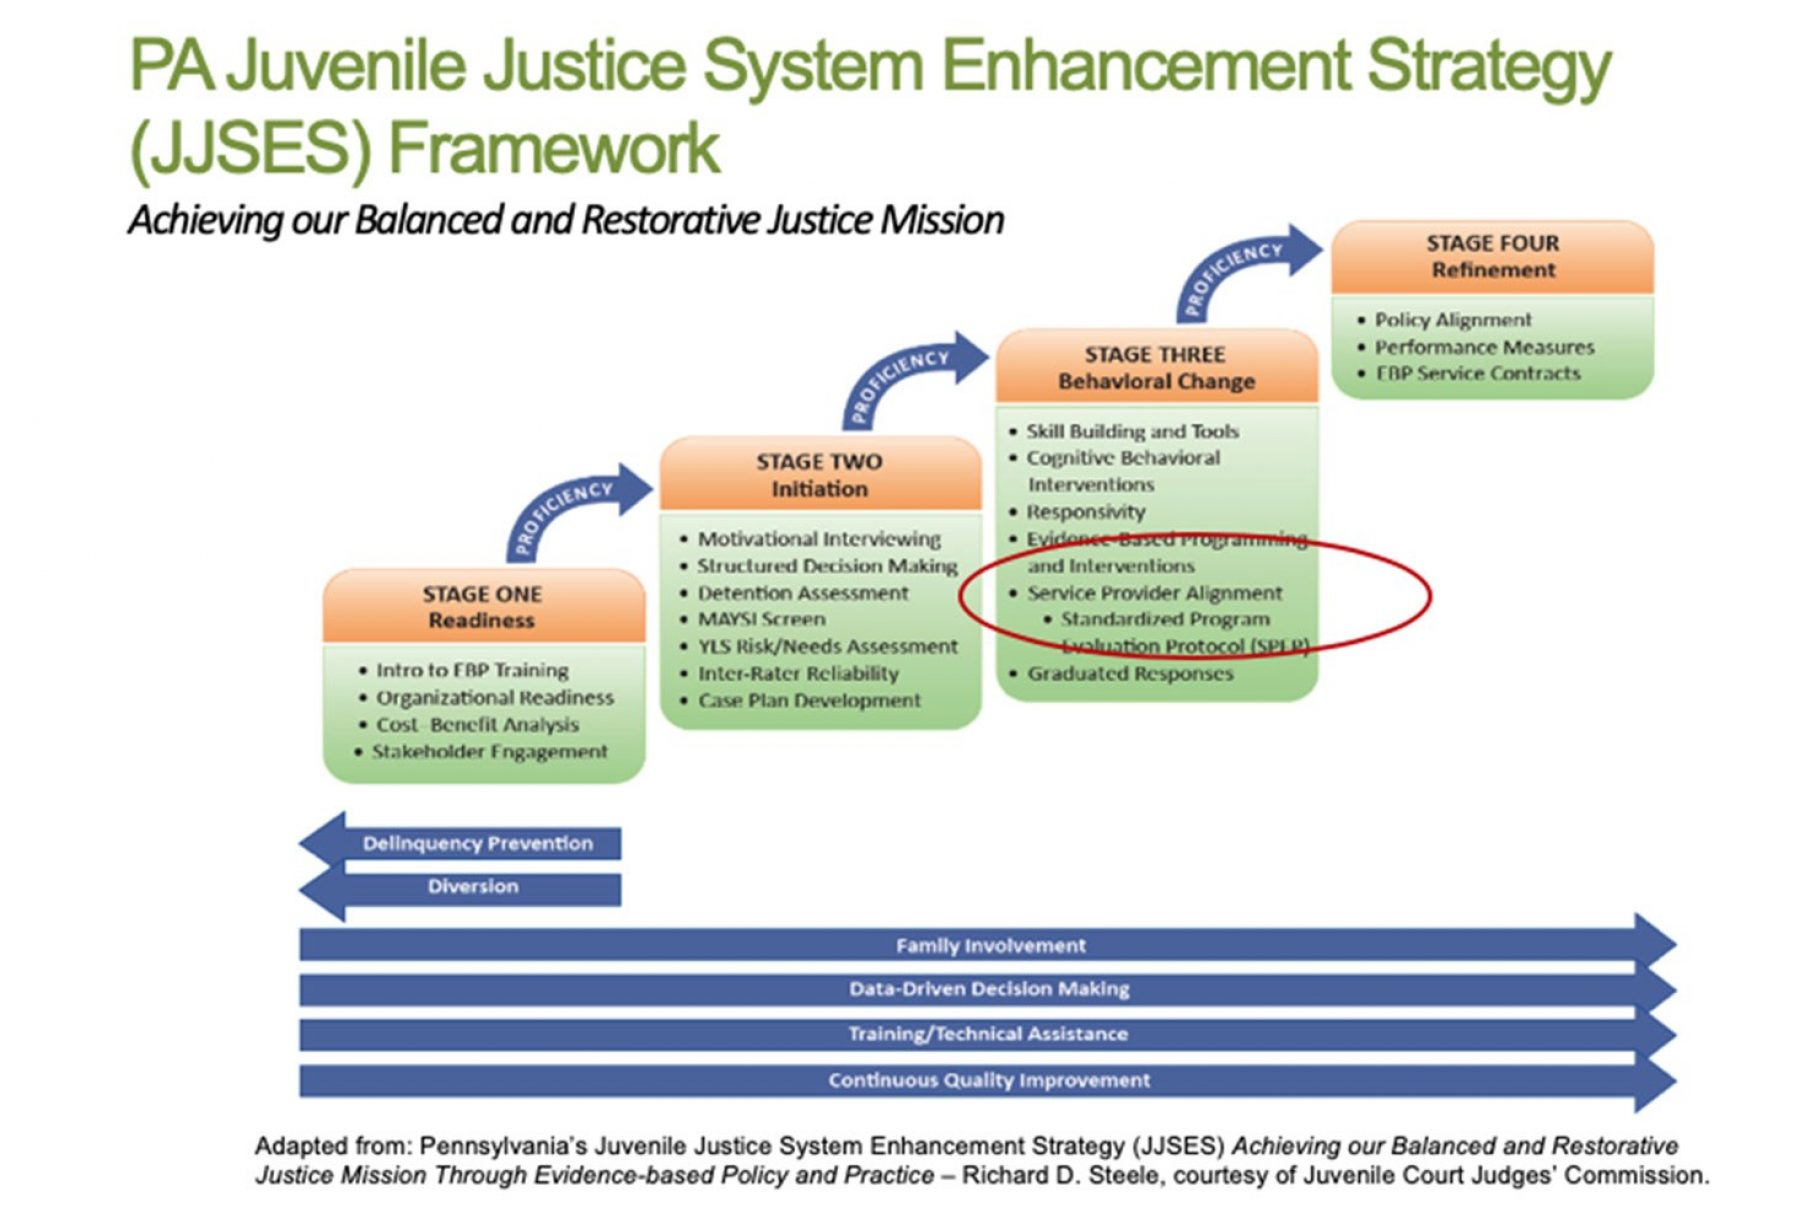 Elements of Pennsylvania's Models for Change Initiatives